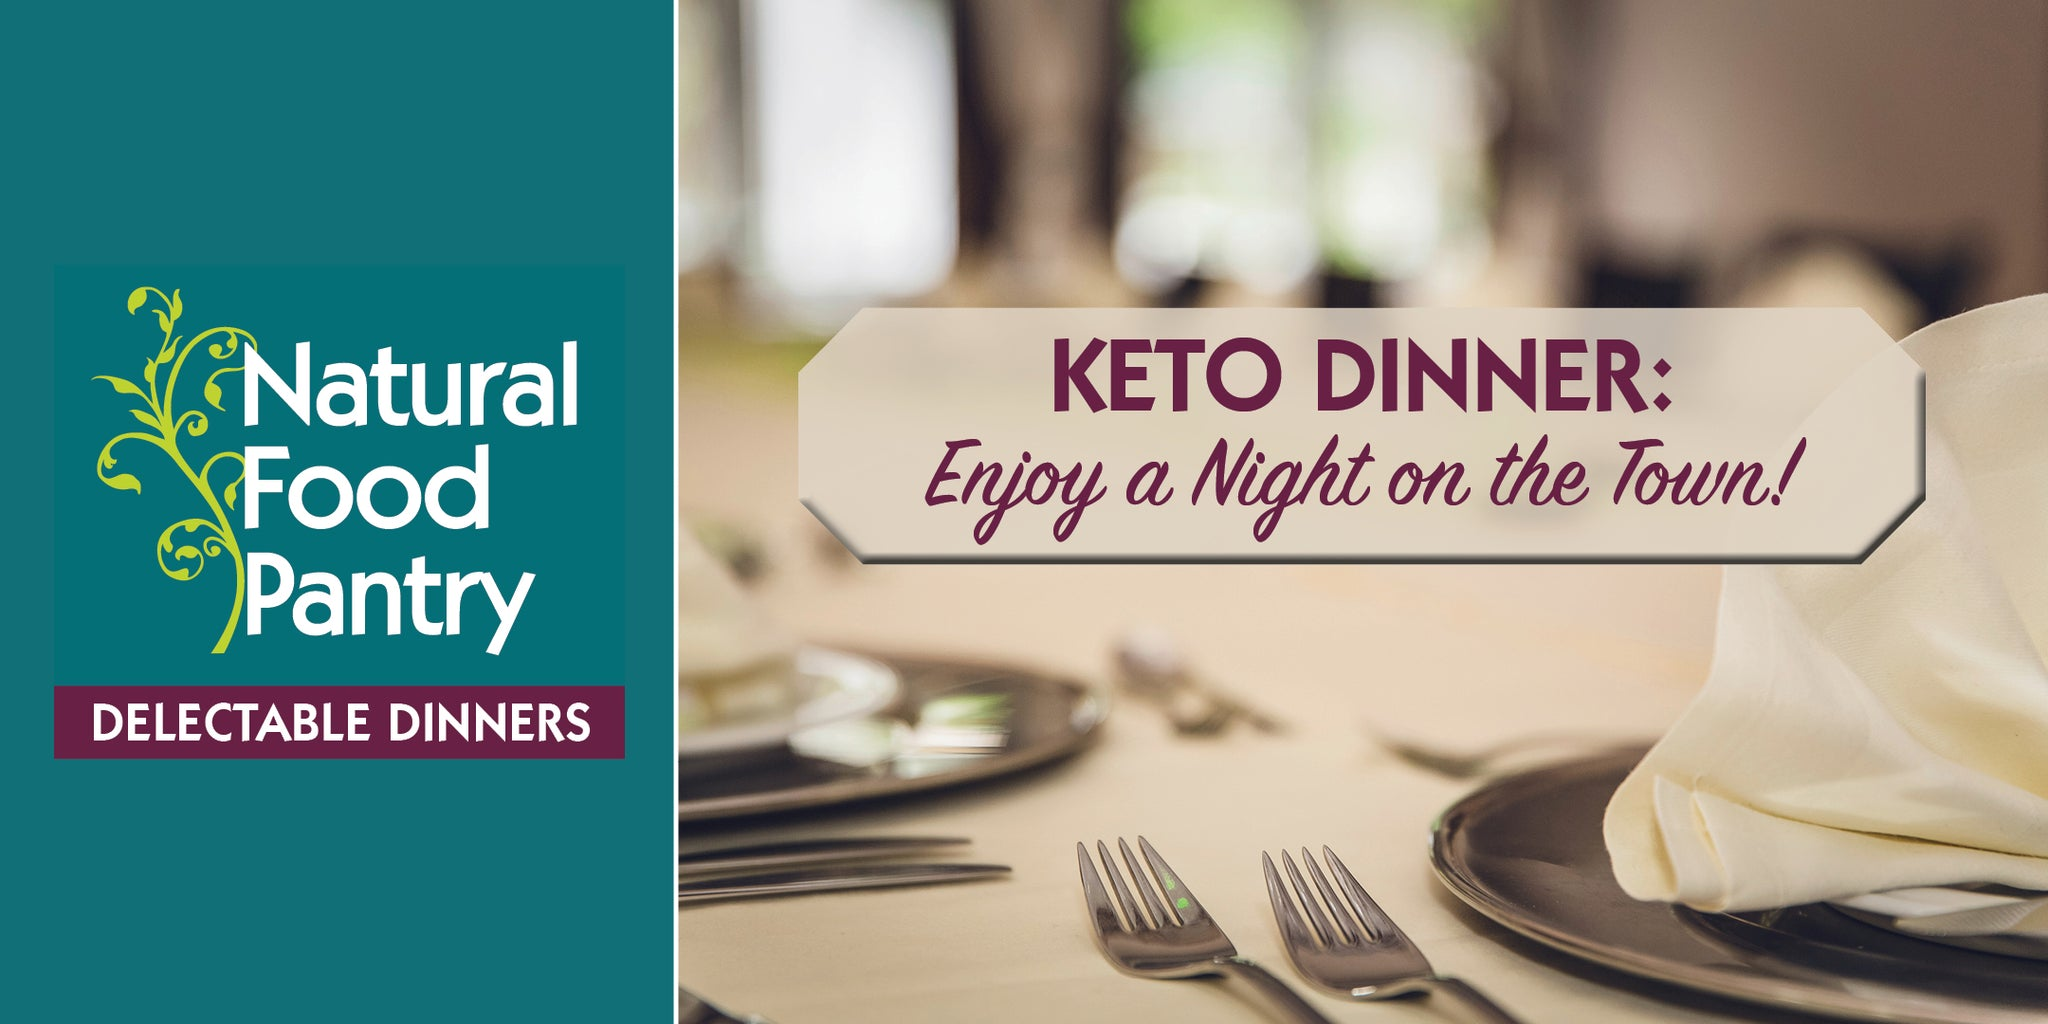 Jan 31: NFP KETO DINNER - Enjoy a night on the town keto style!